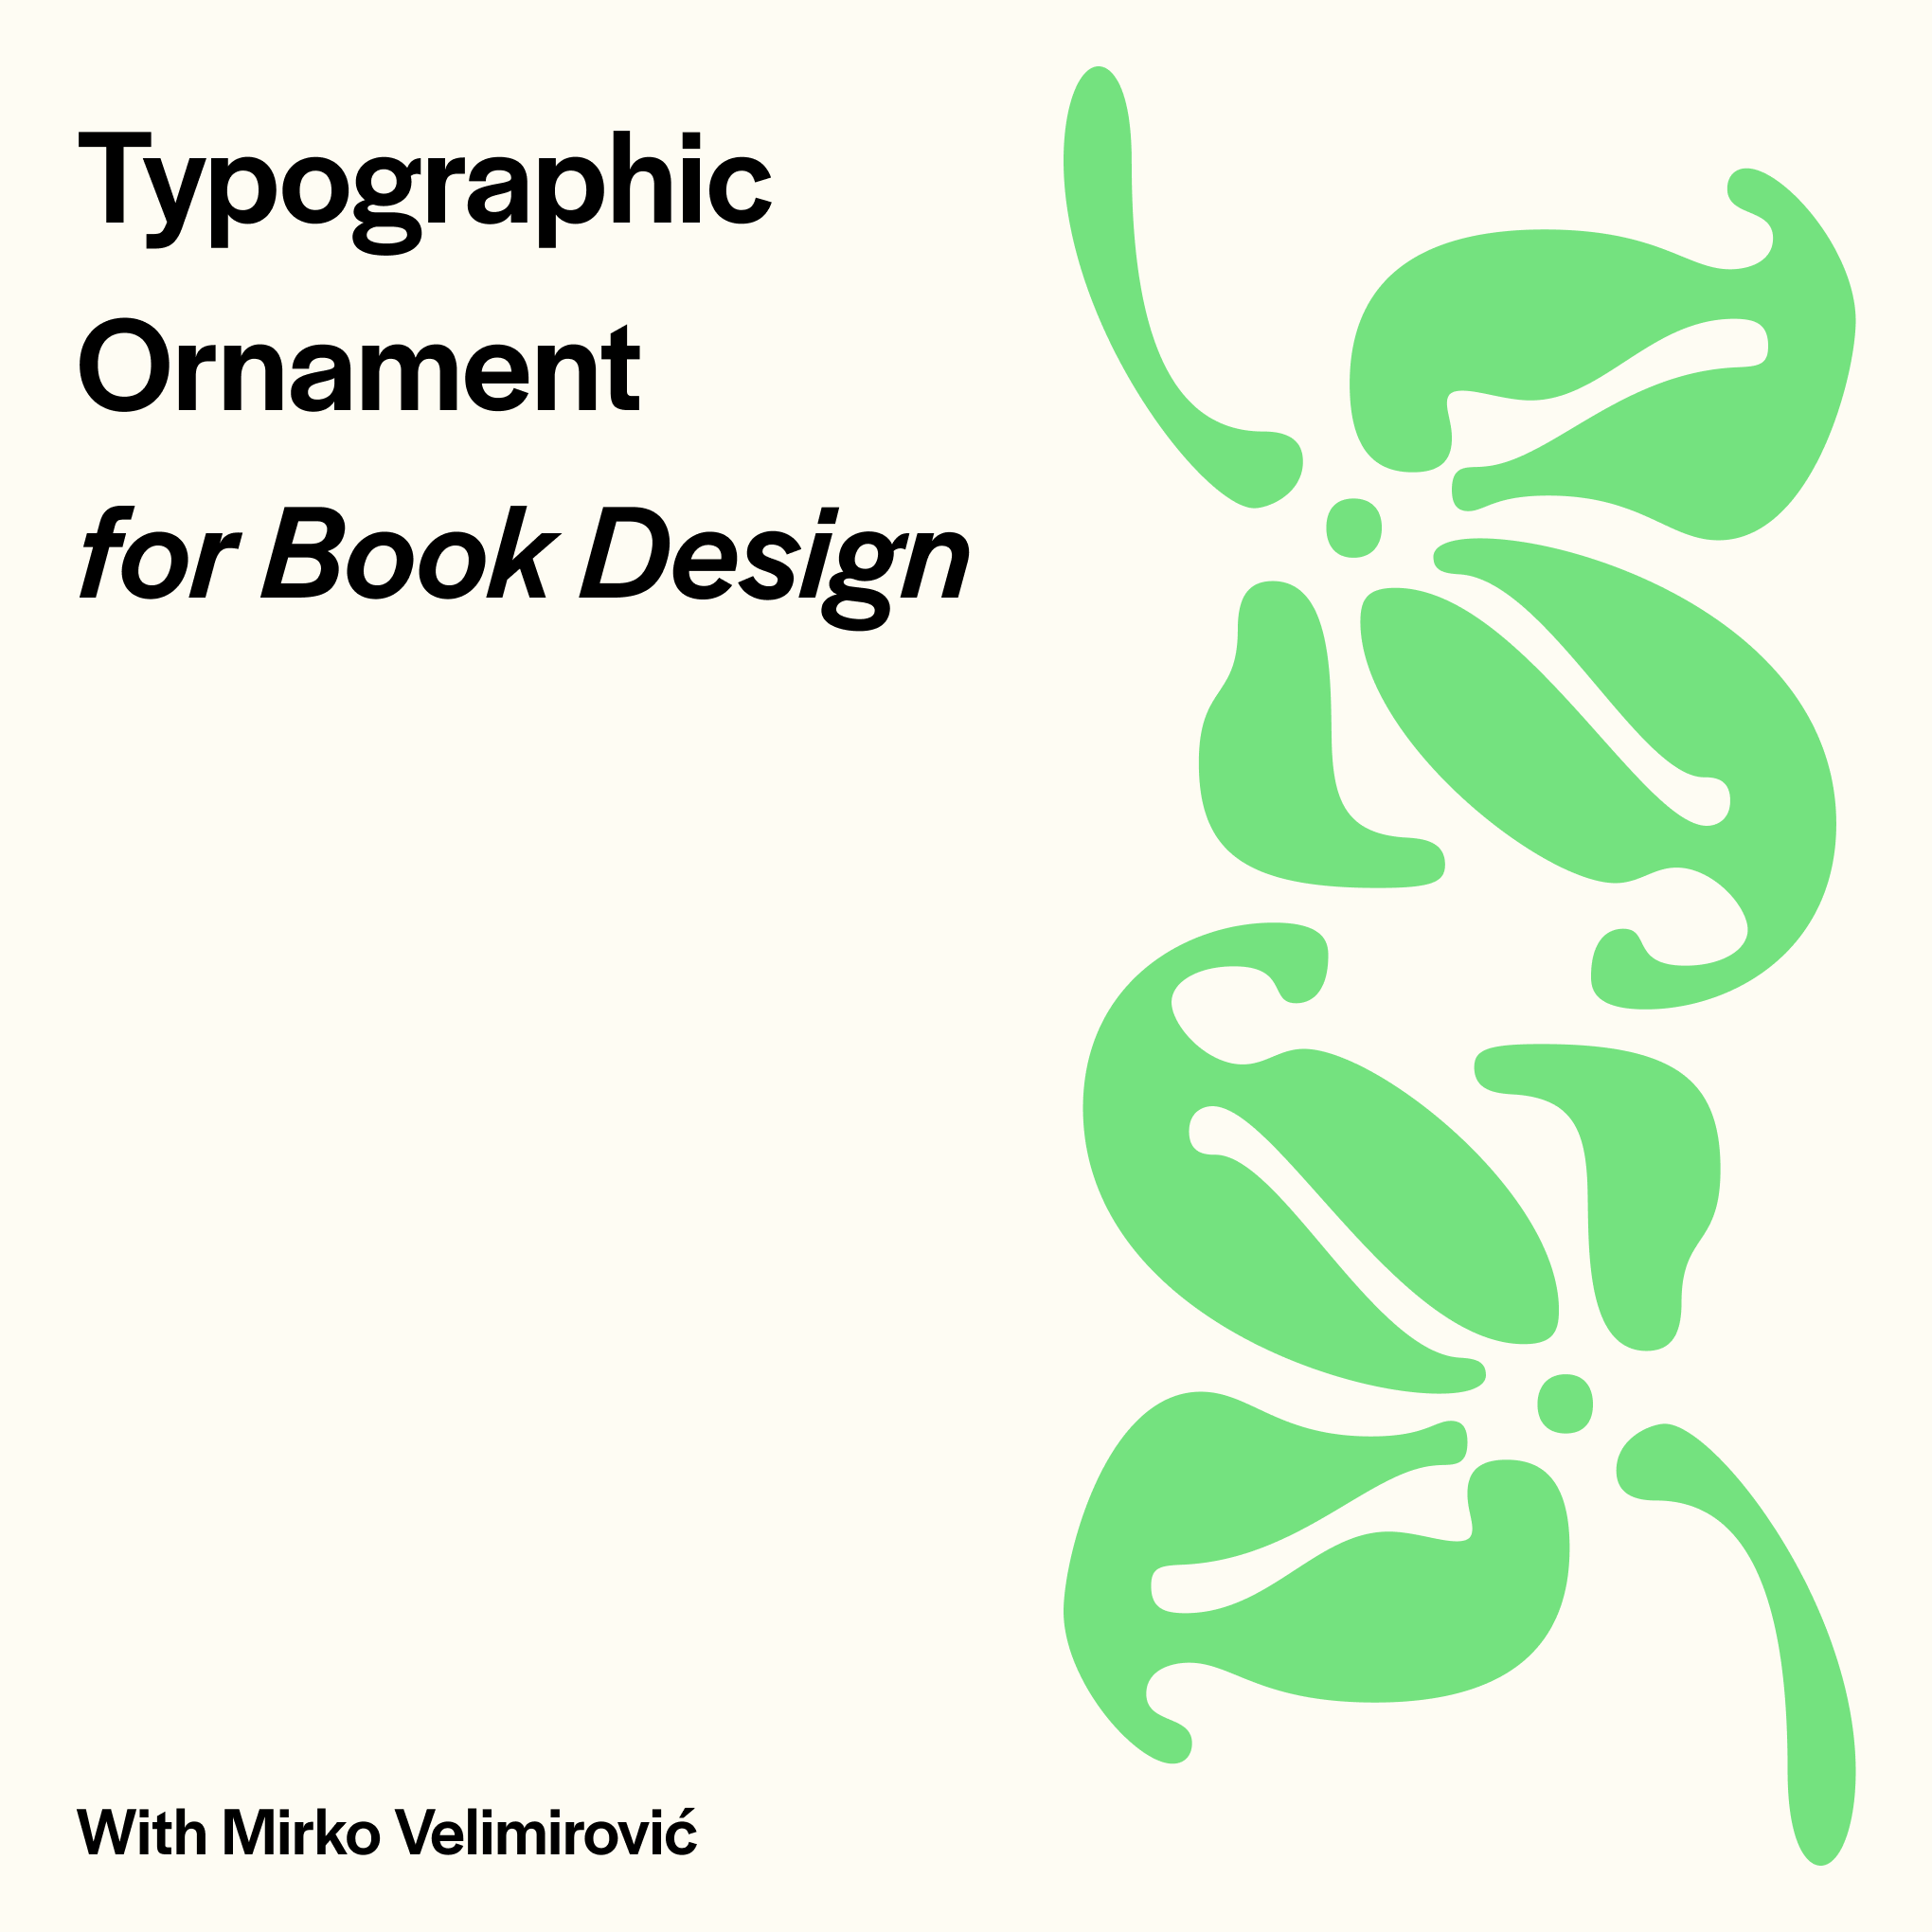 """A green-leaf typographic ornament on a plain background. """"Typographic Ornament for Book Design with Mirko Velimirovic"""" is typed on the left side of the image."""